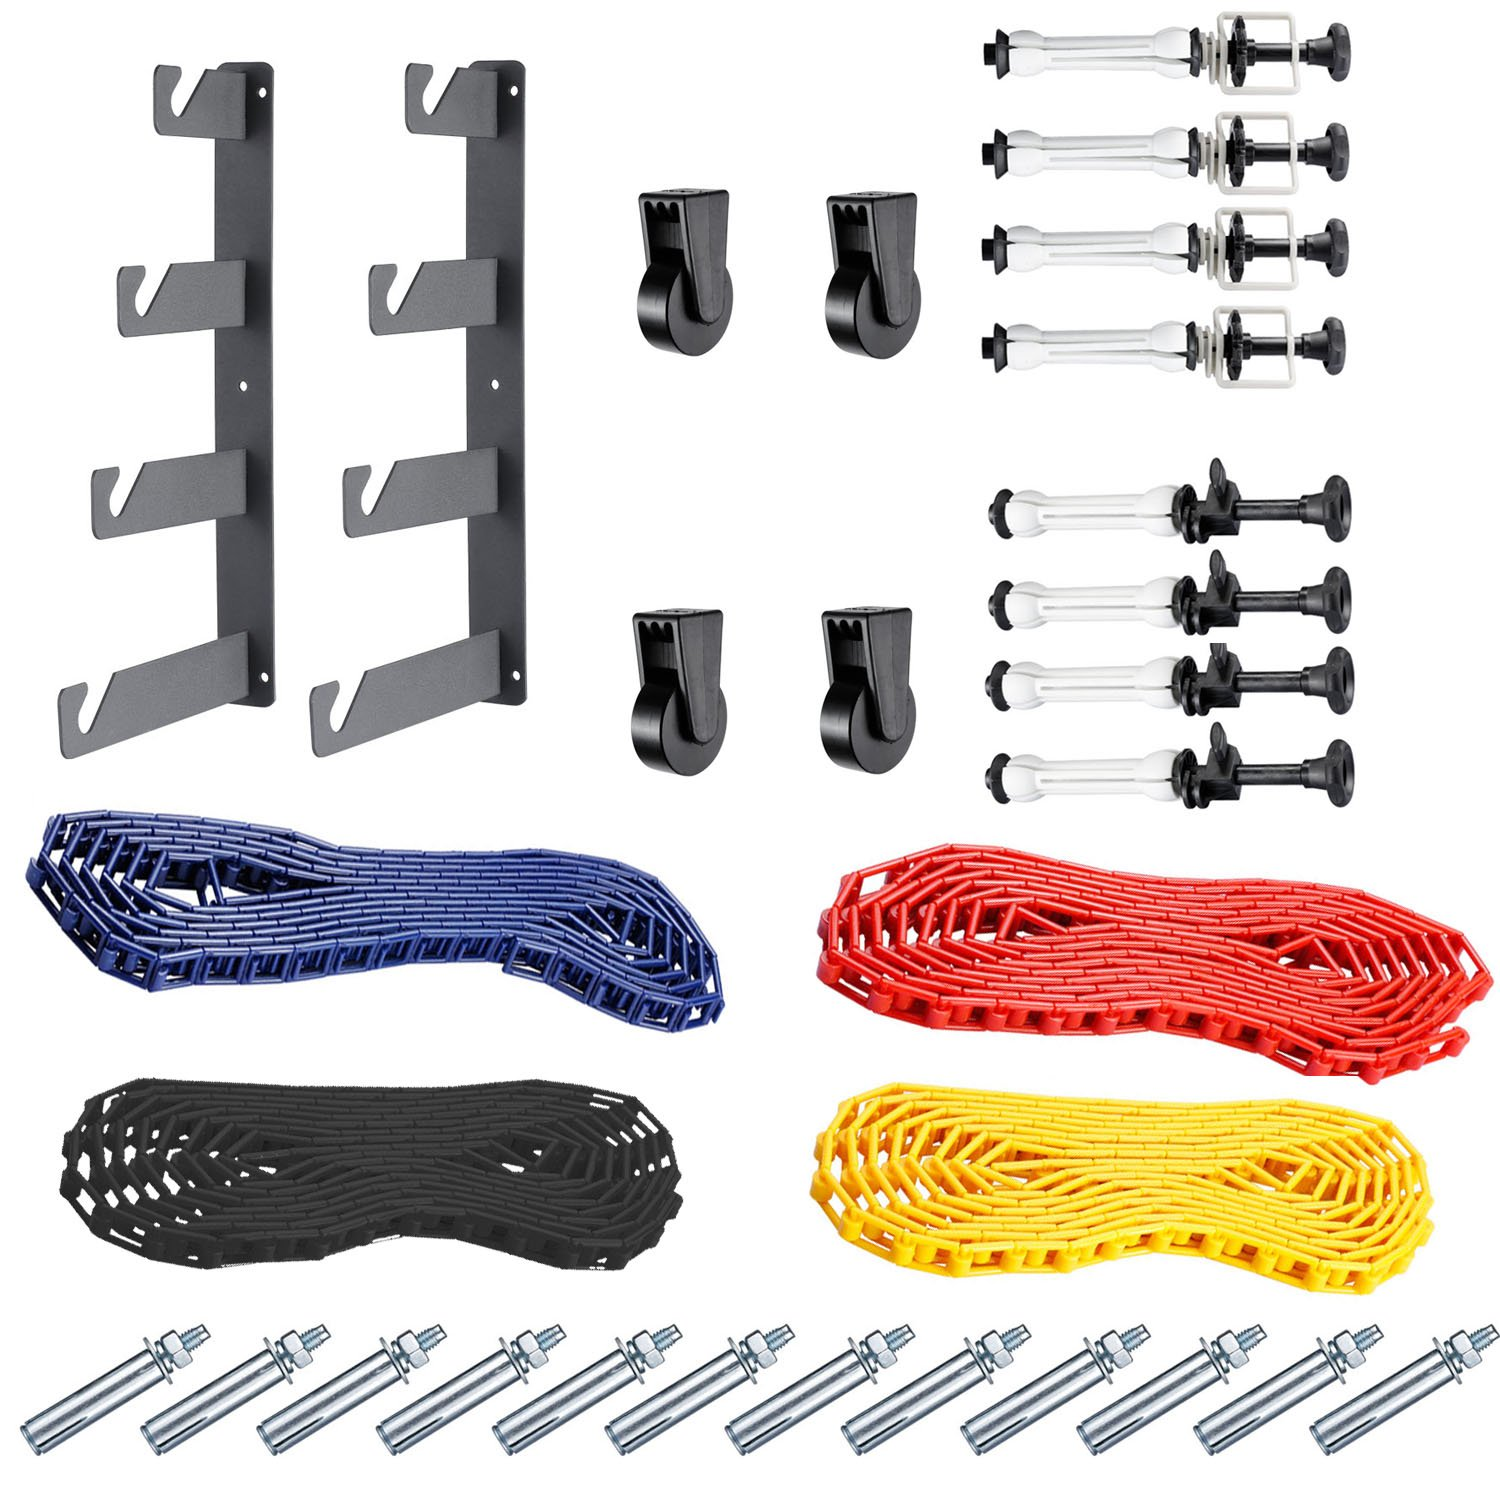 Neewer Photography 4 Roller Wall Mounting Manual Background Support System, including Two(2) Four-fold hooks, Six(6) Expand bars, Four(4) Chains, Ten(10)Clamp Screws by Neewer